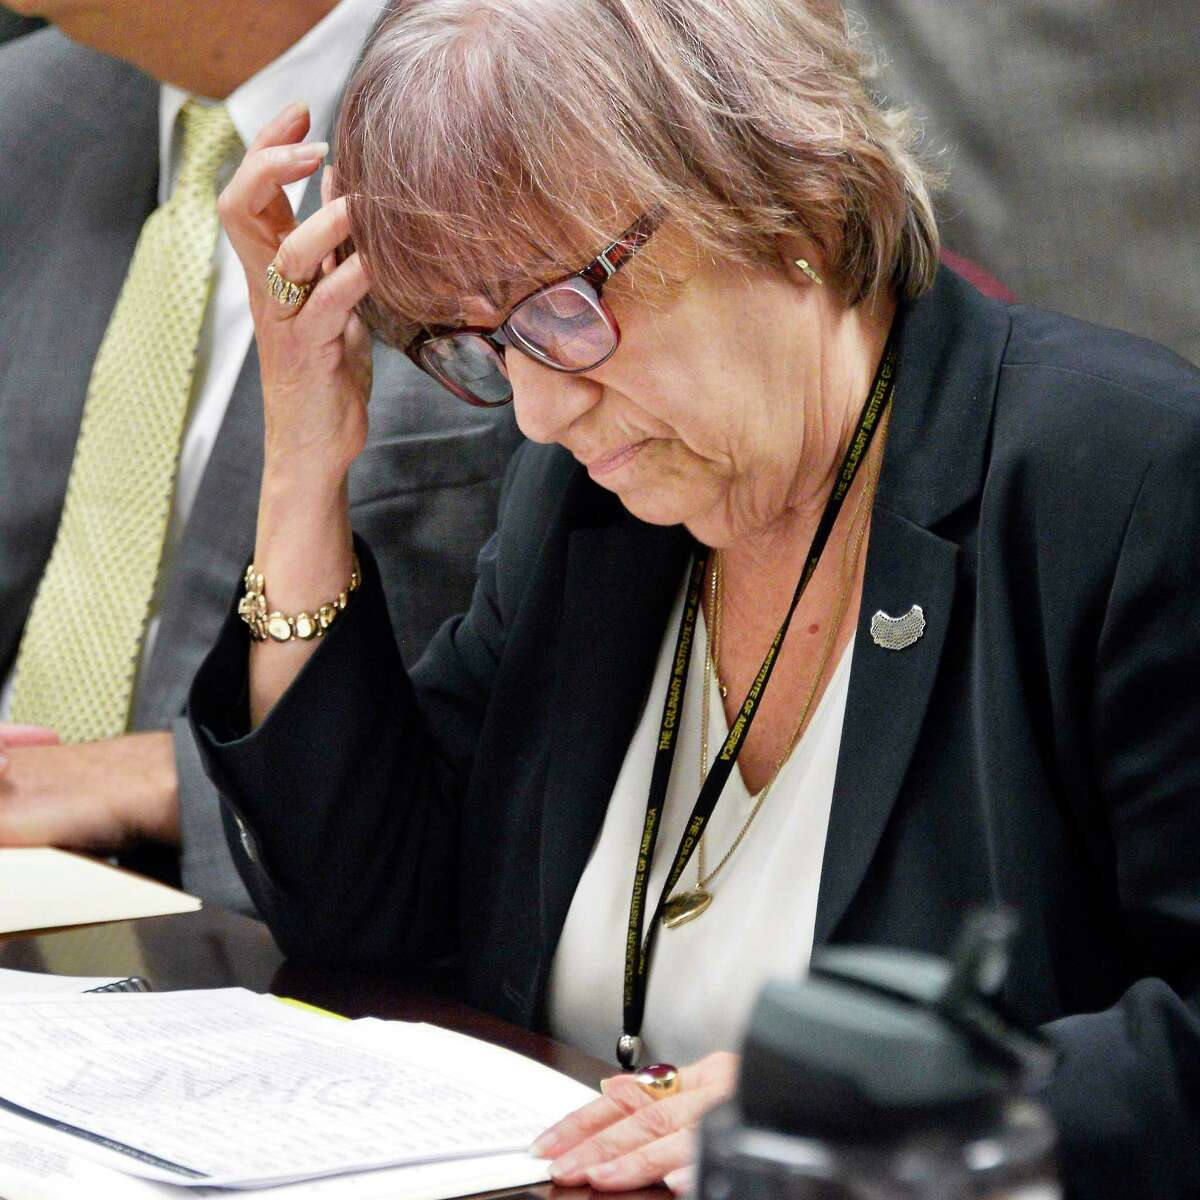 Enforcement counsel Risa Sugarman during a meeting of the State Board of Elections Wednesday August 8, 2018 in Albany, NY. (John Carl D'Annibale/Times Union)